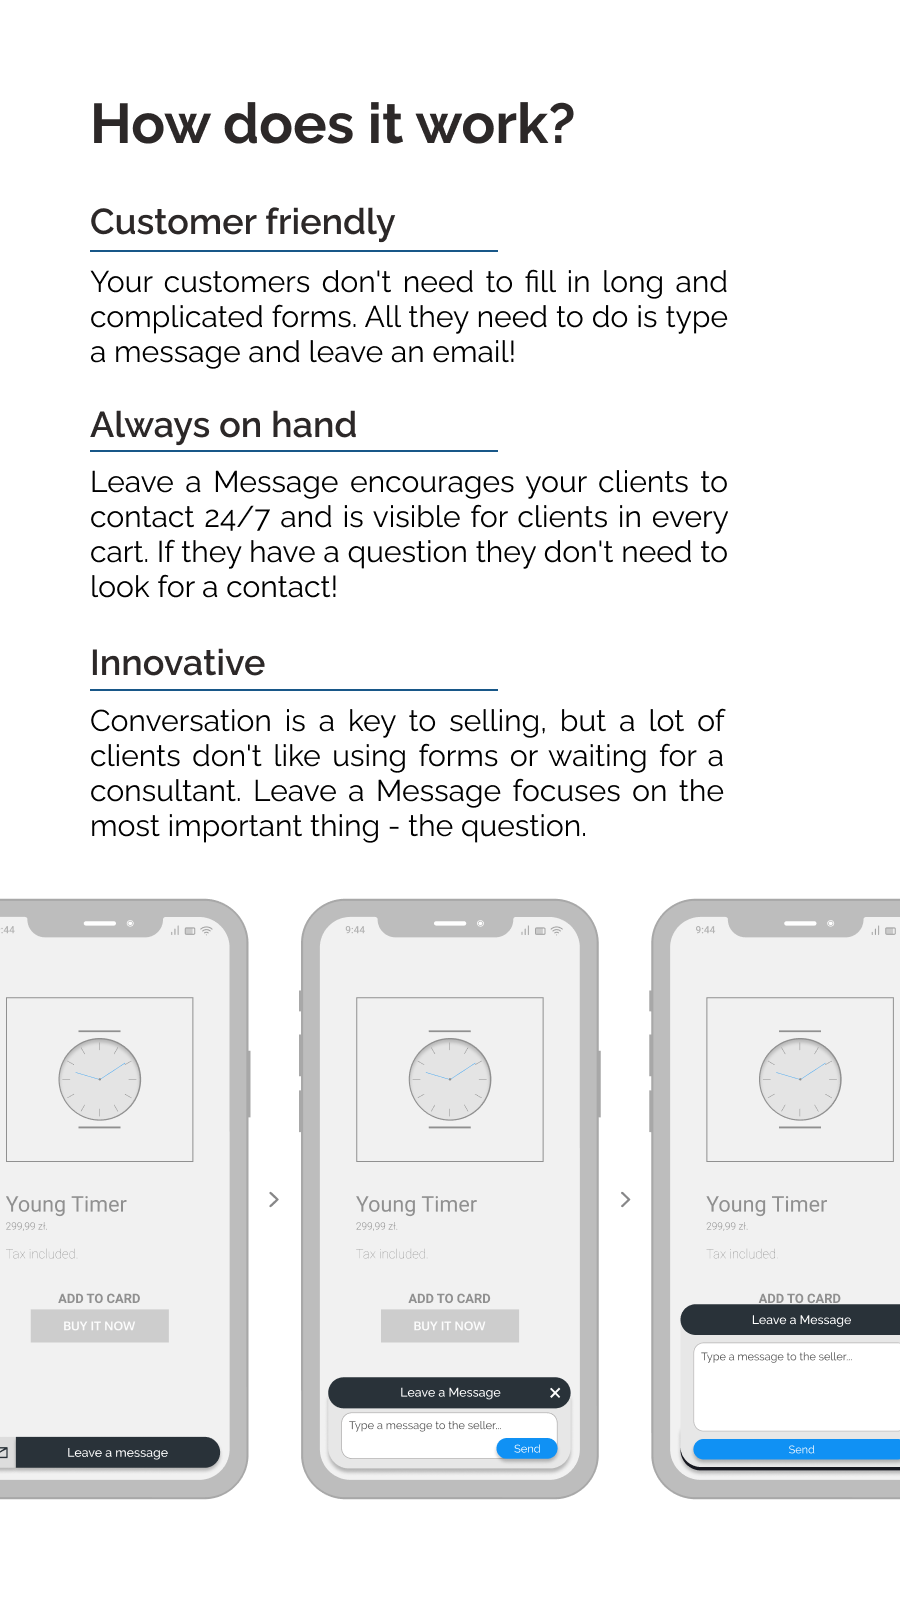 Short explanation why app is innovative and customer friendly